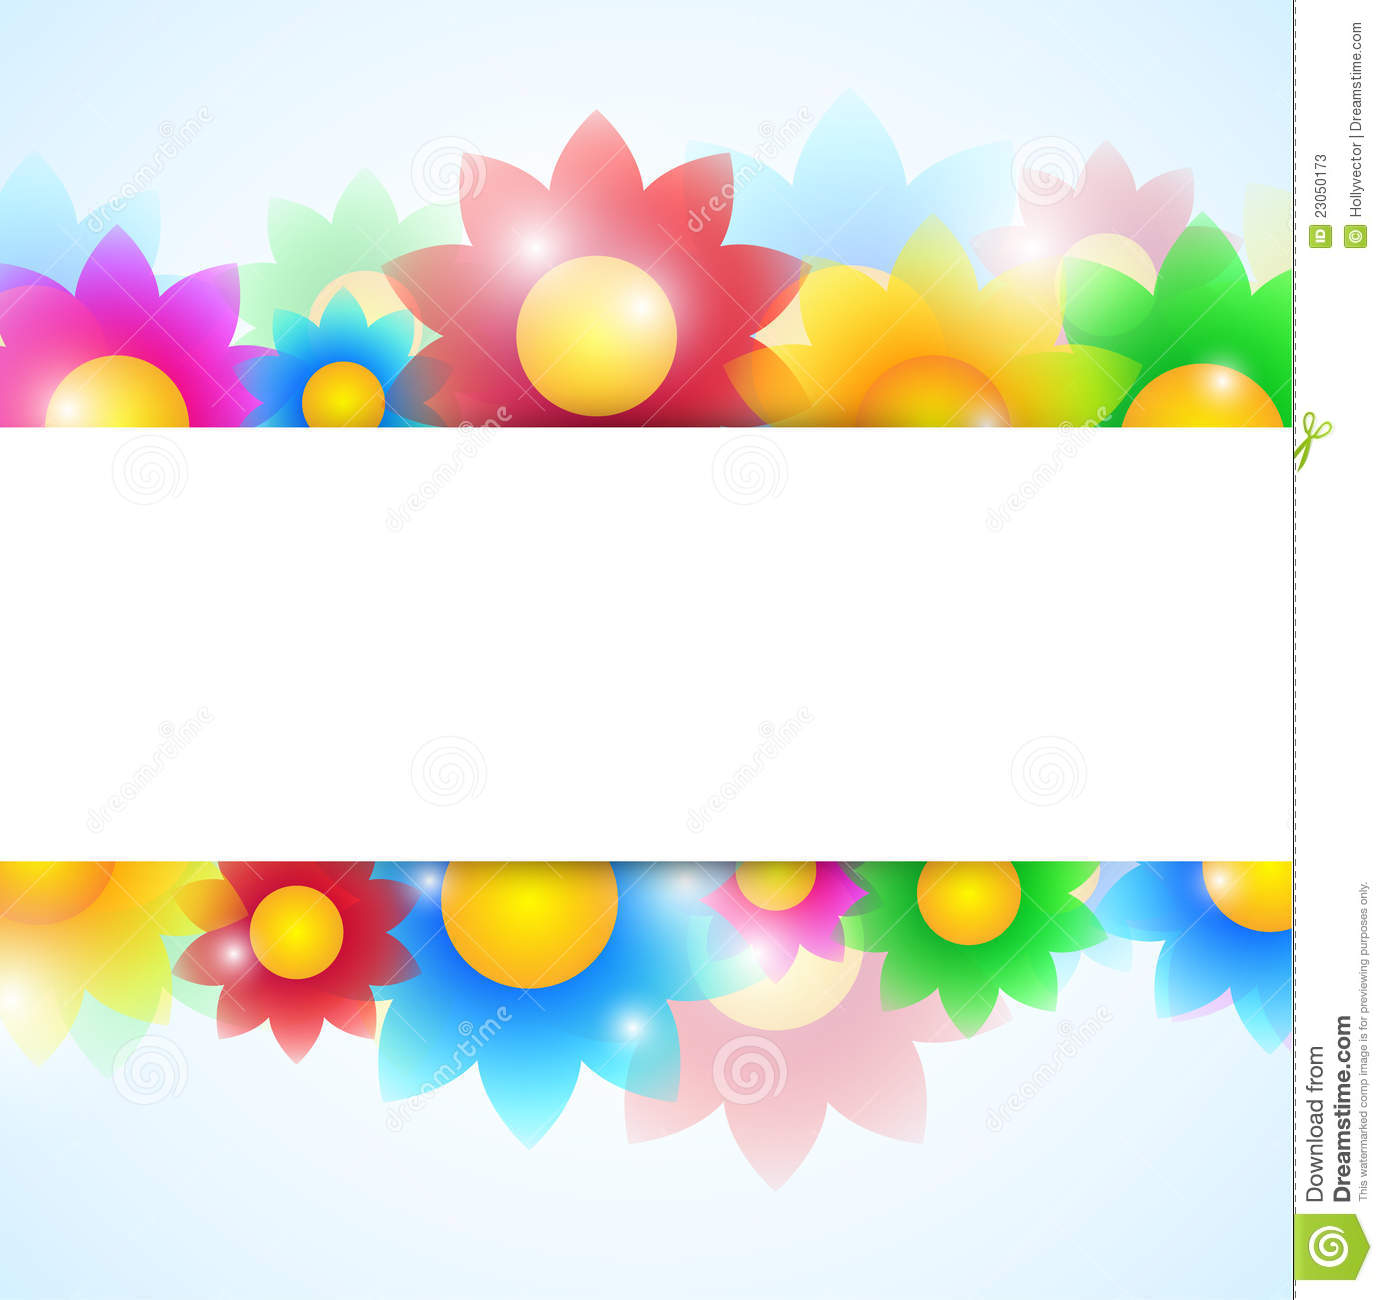 clipart floral banner - photo #45